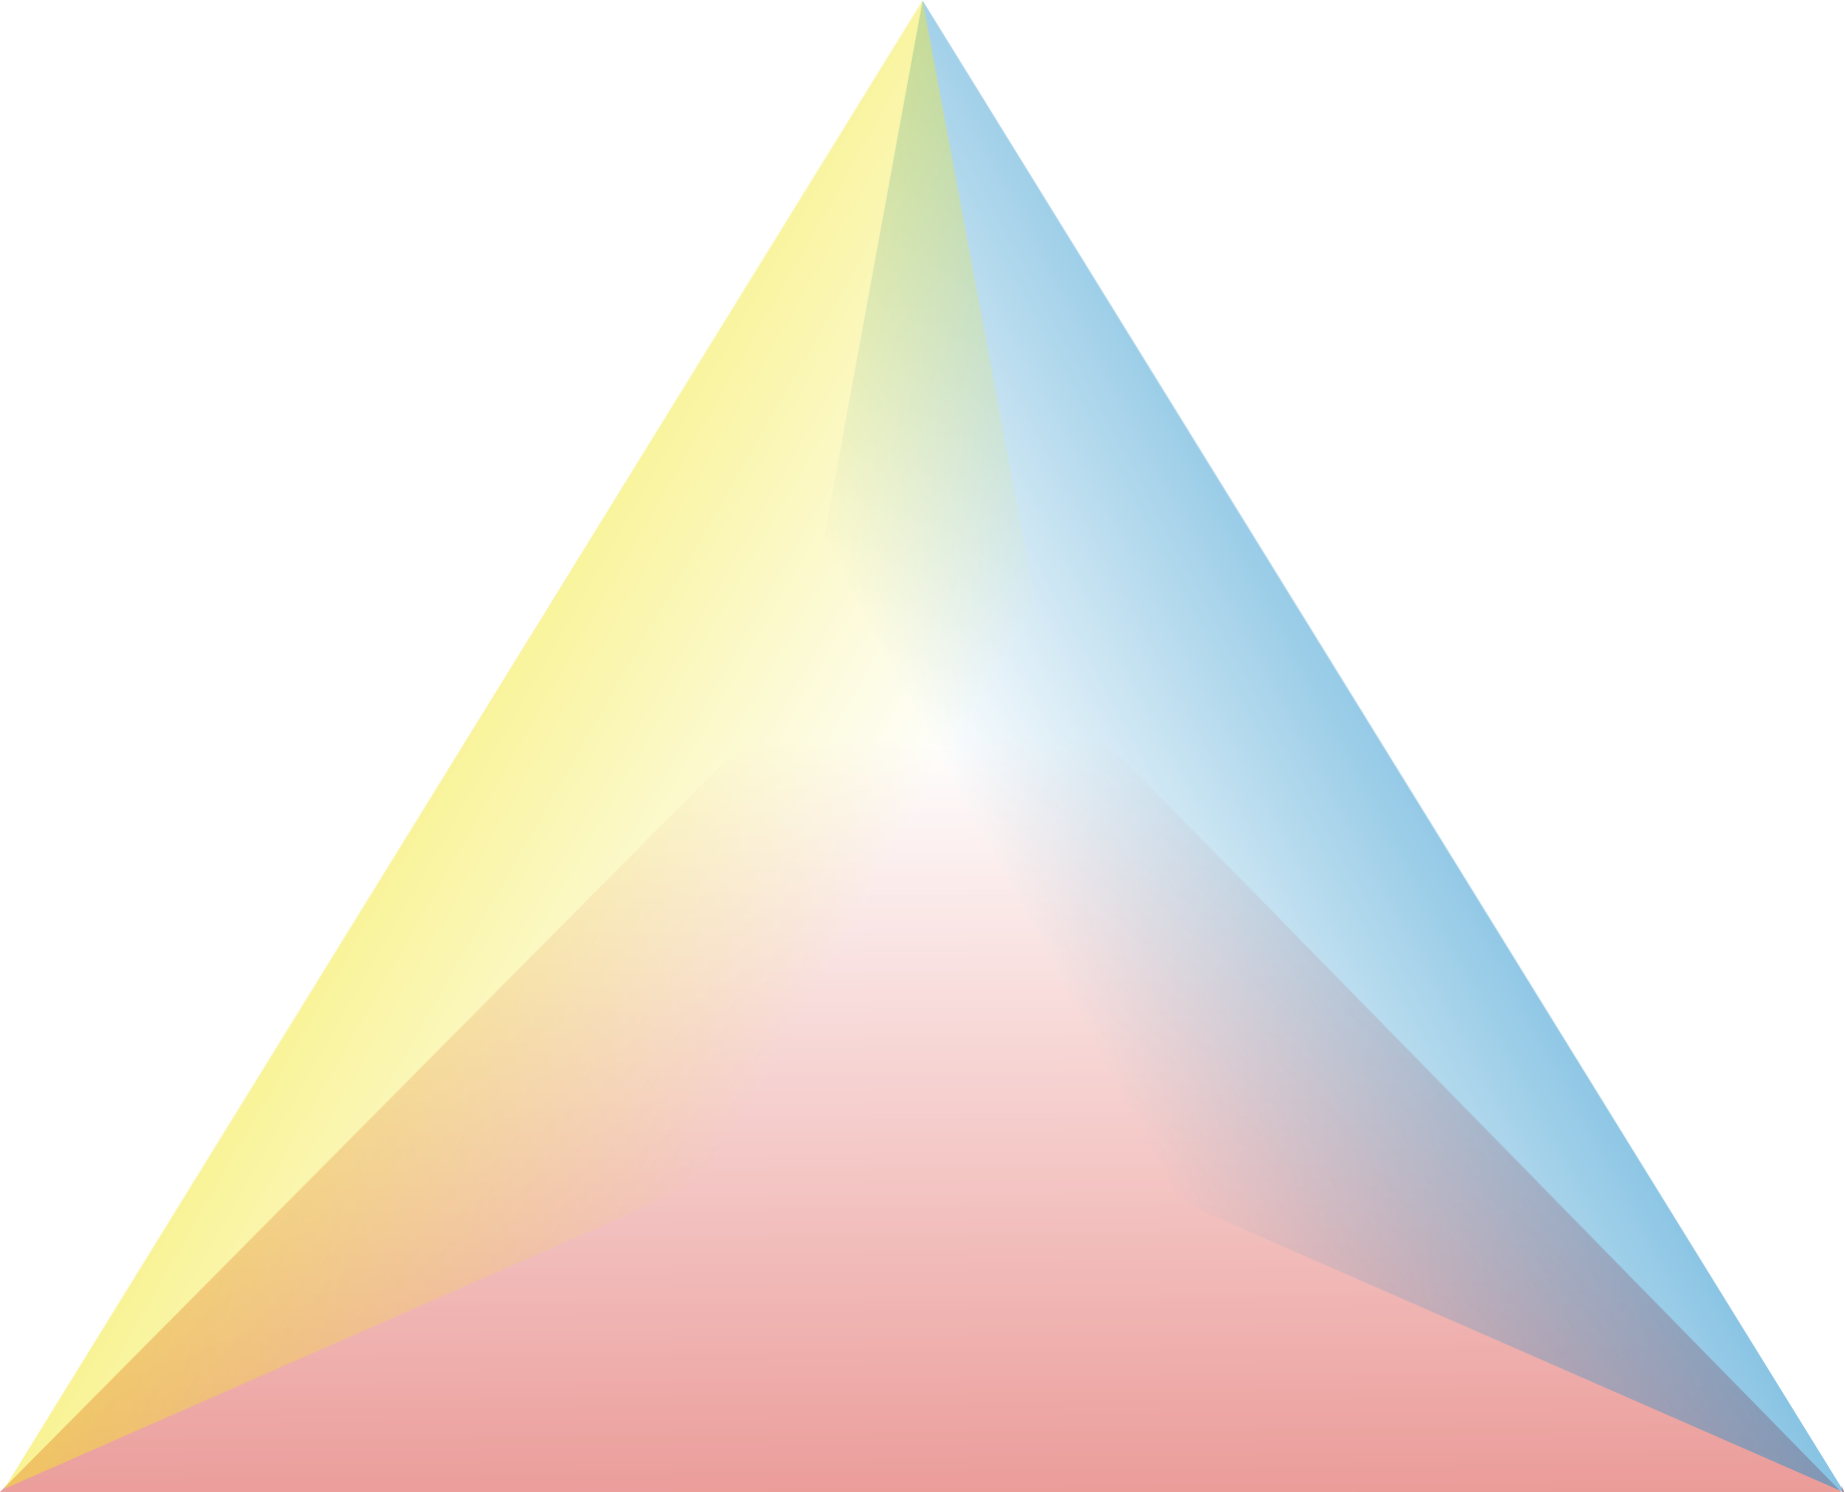 Triangle PNG - 22949